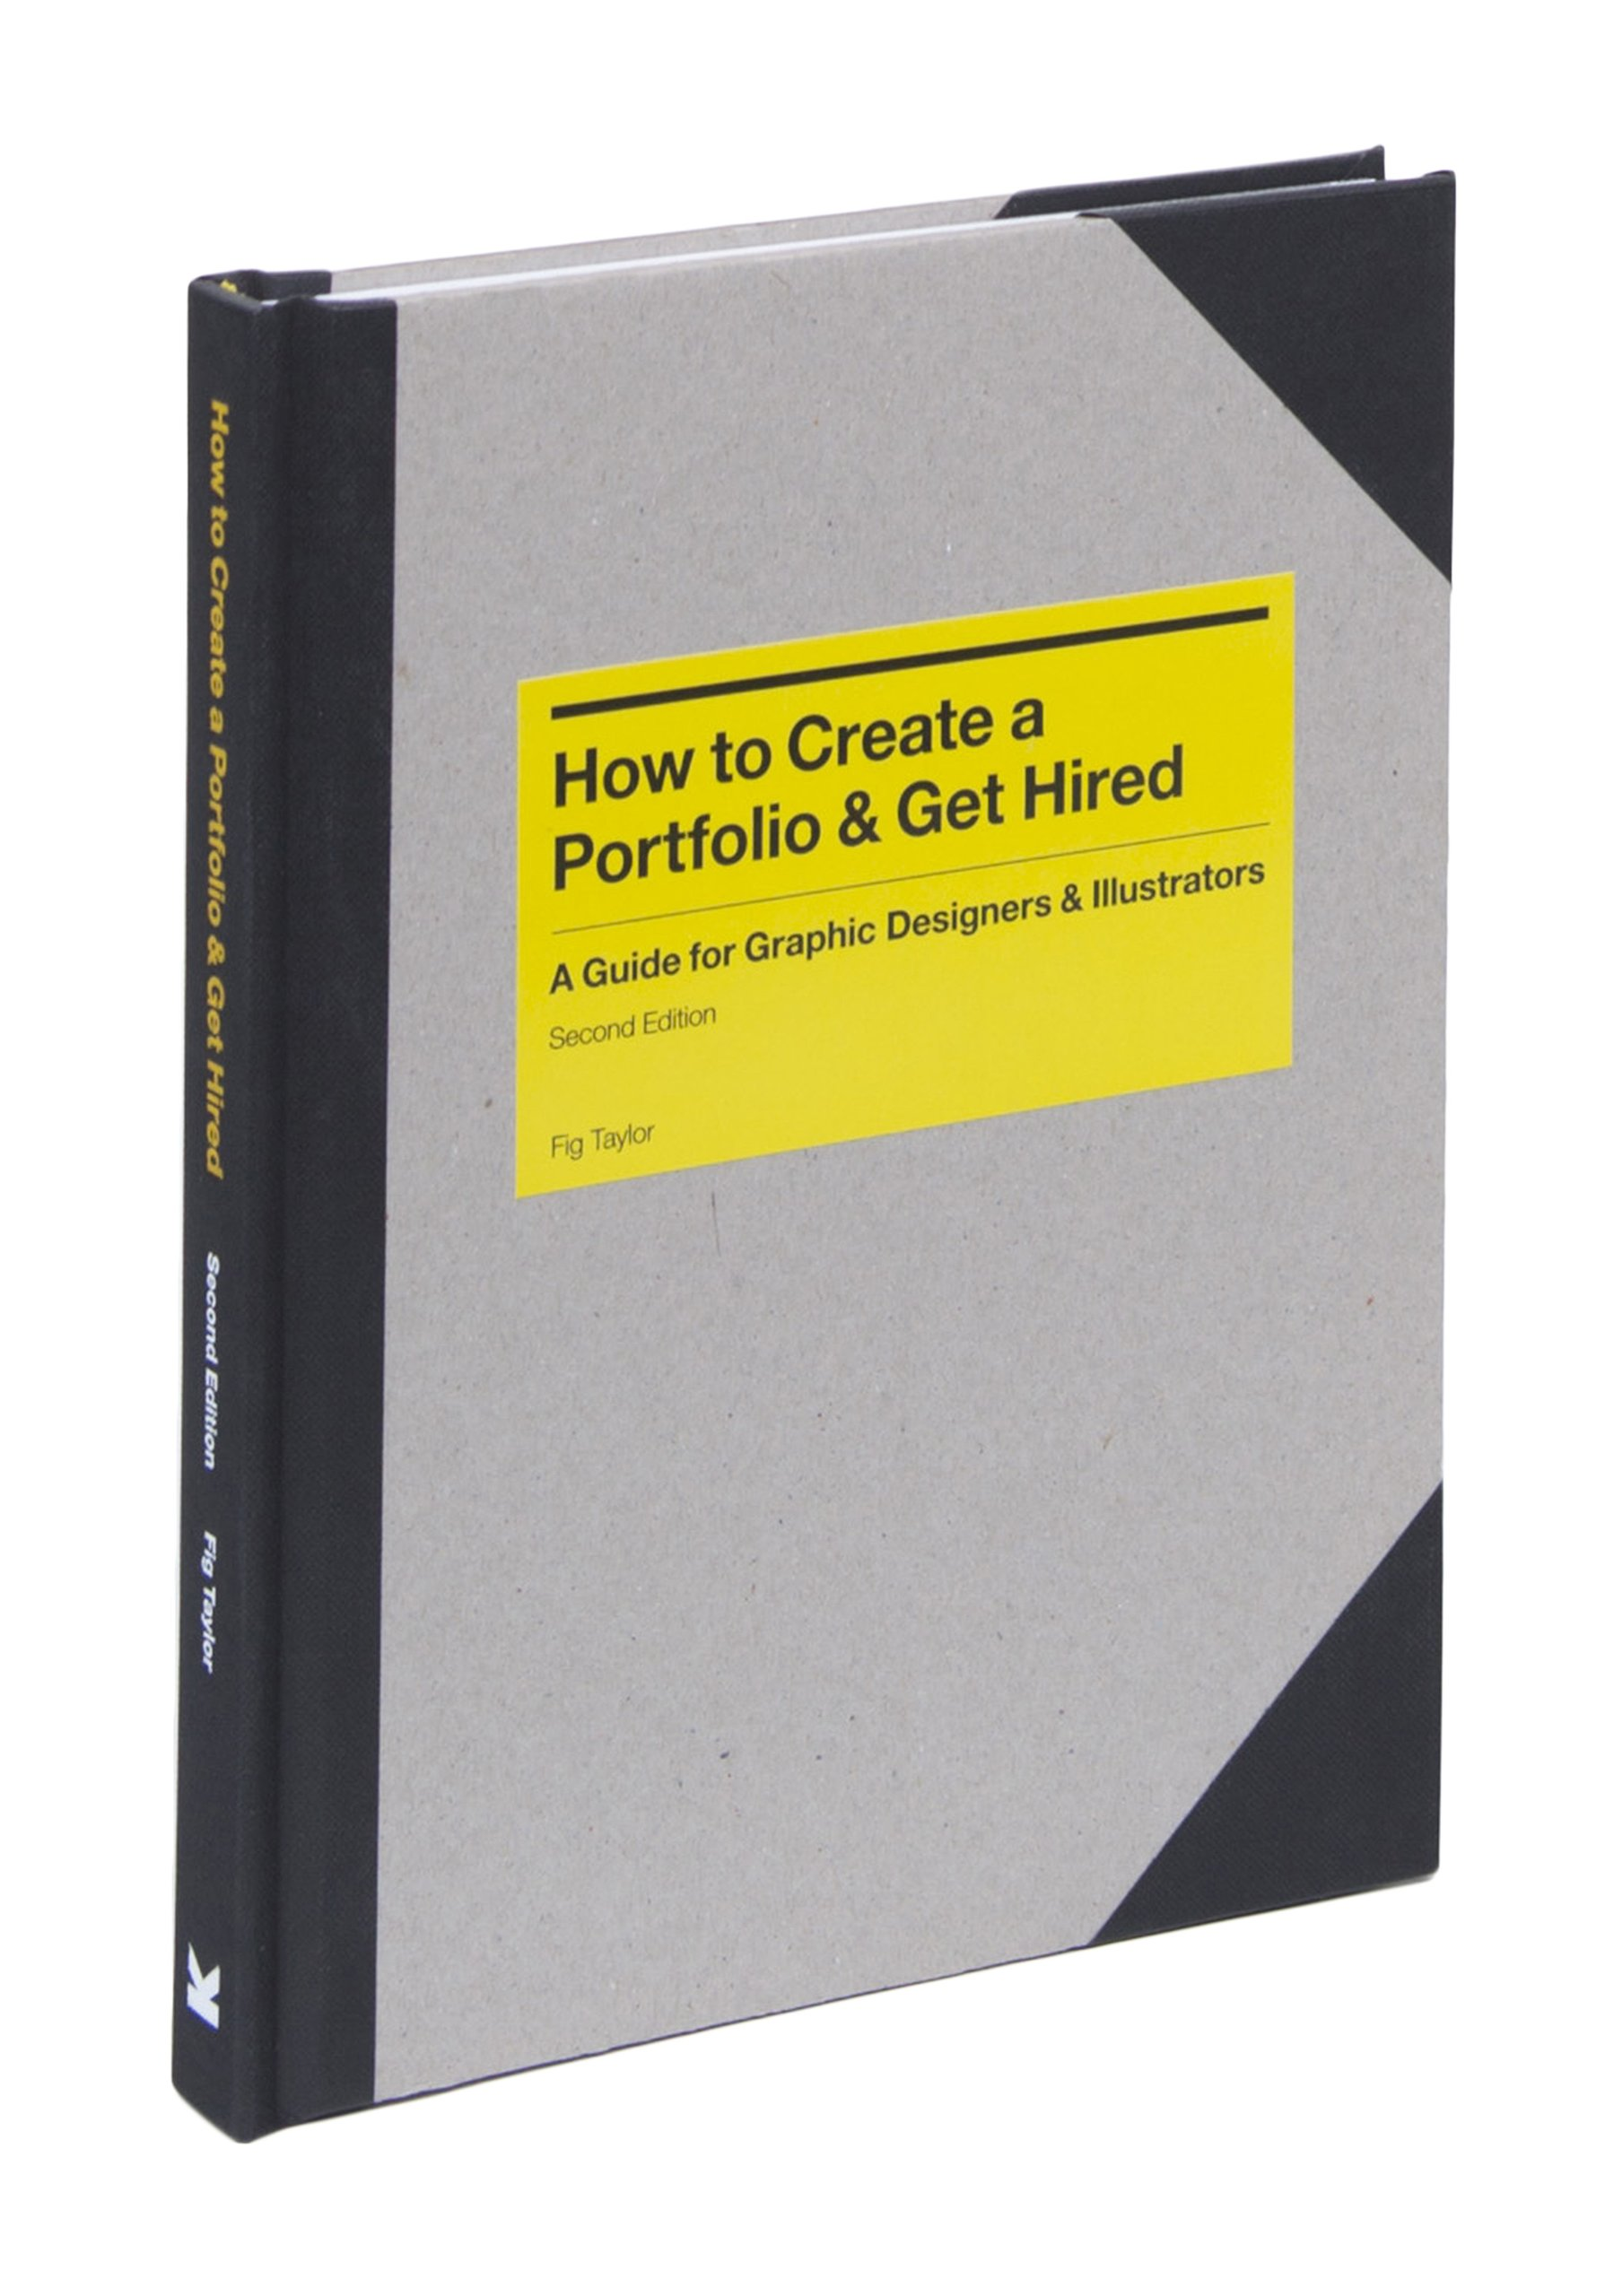 how to create a portfolio and get hired second edition a guide how to create a portfolio and get hired second edition a guide for graphic designers and illustrators fig taylor 9781780672922 com books